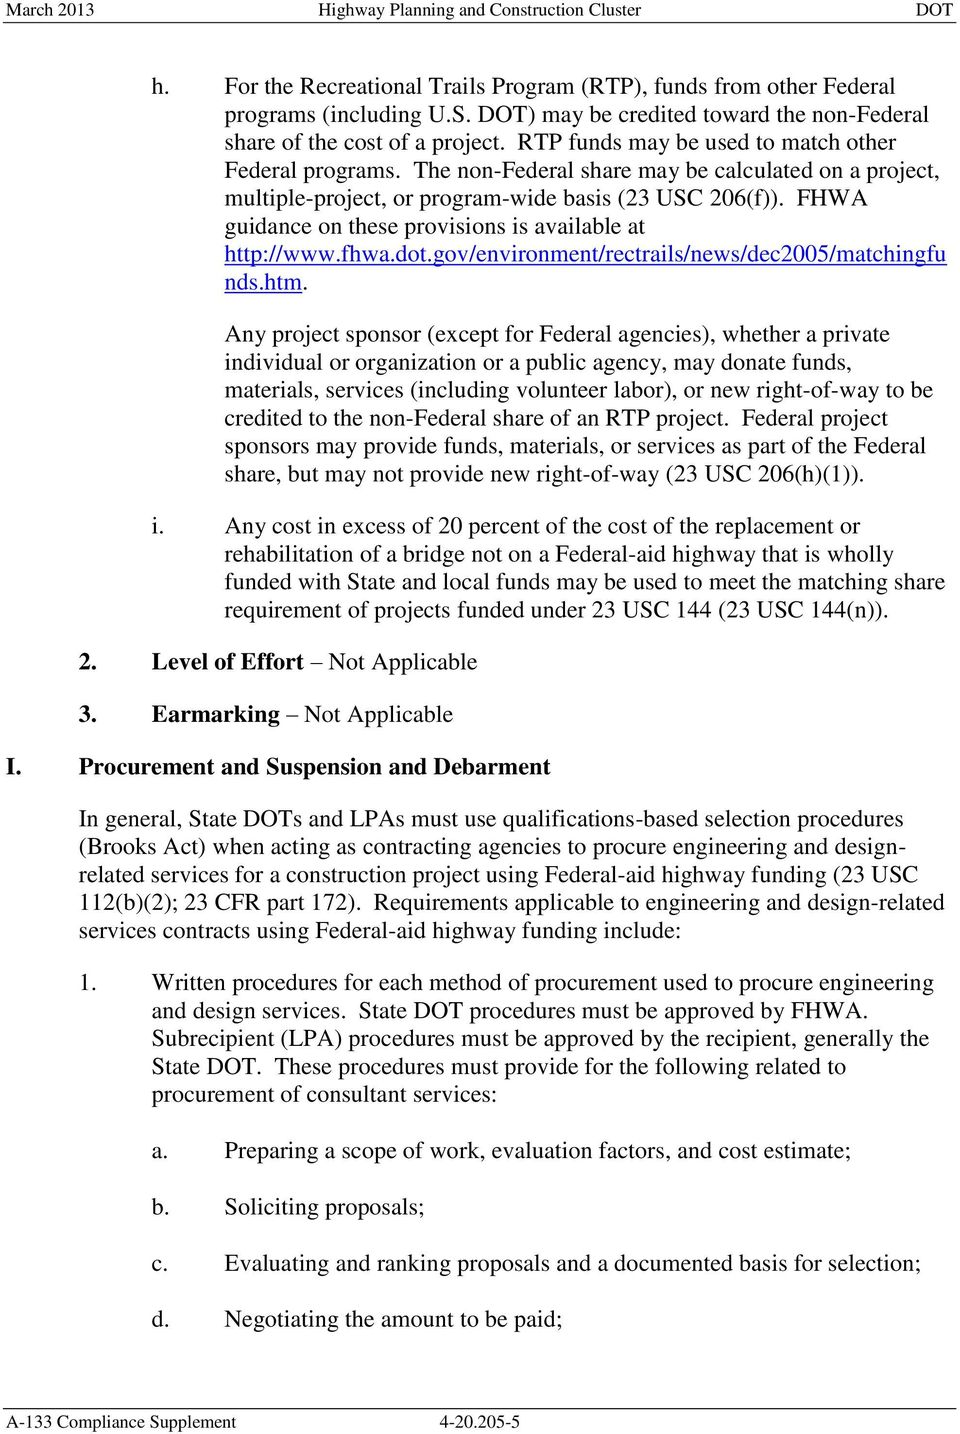 FHWA guidance on these provisions is available at http://www.fhwa.dot.gov/environment/rectrails/news/dec2005/matchingfu nds.htm.